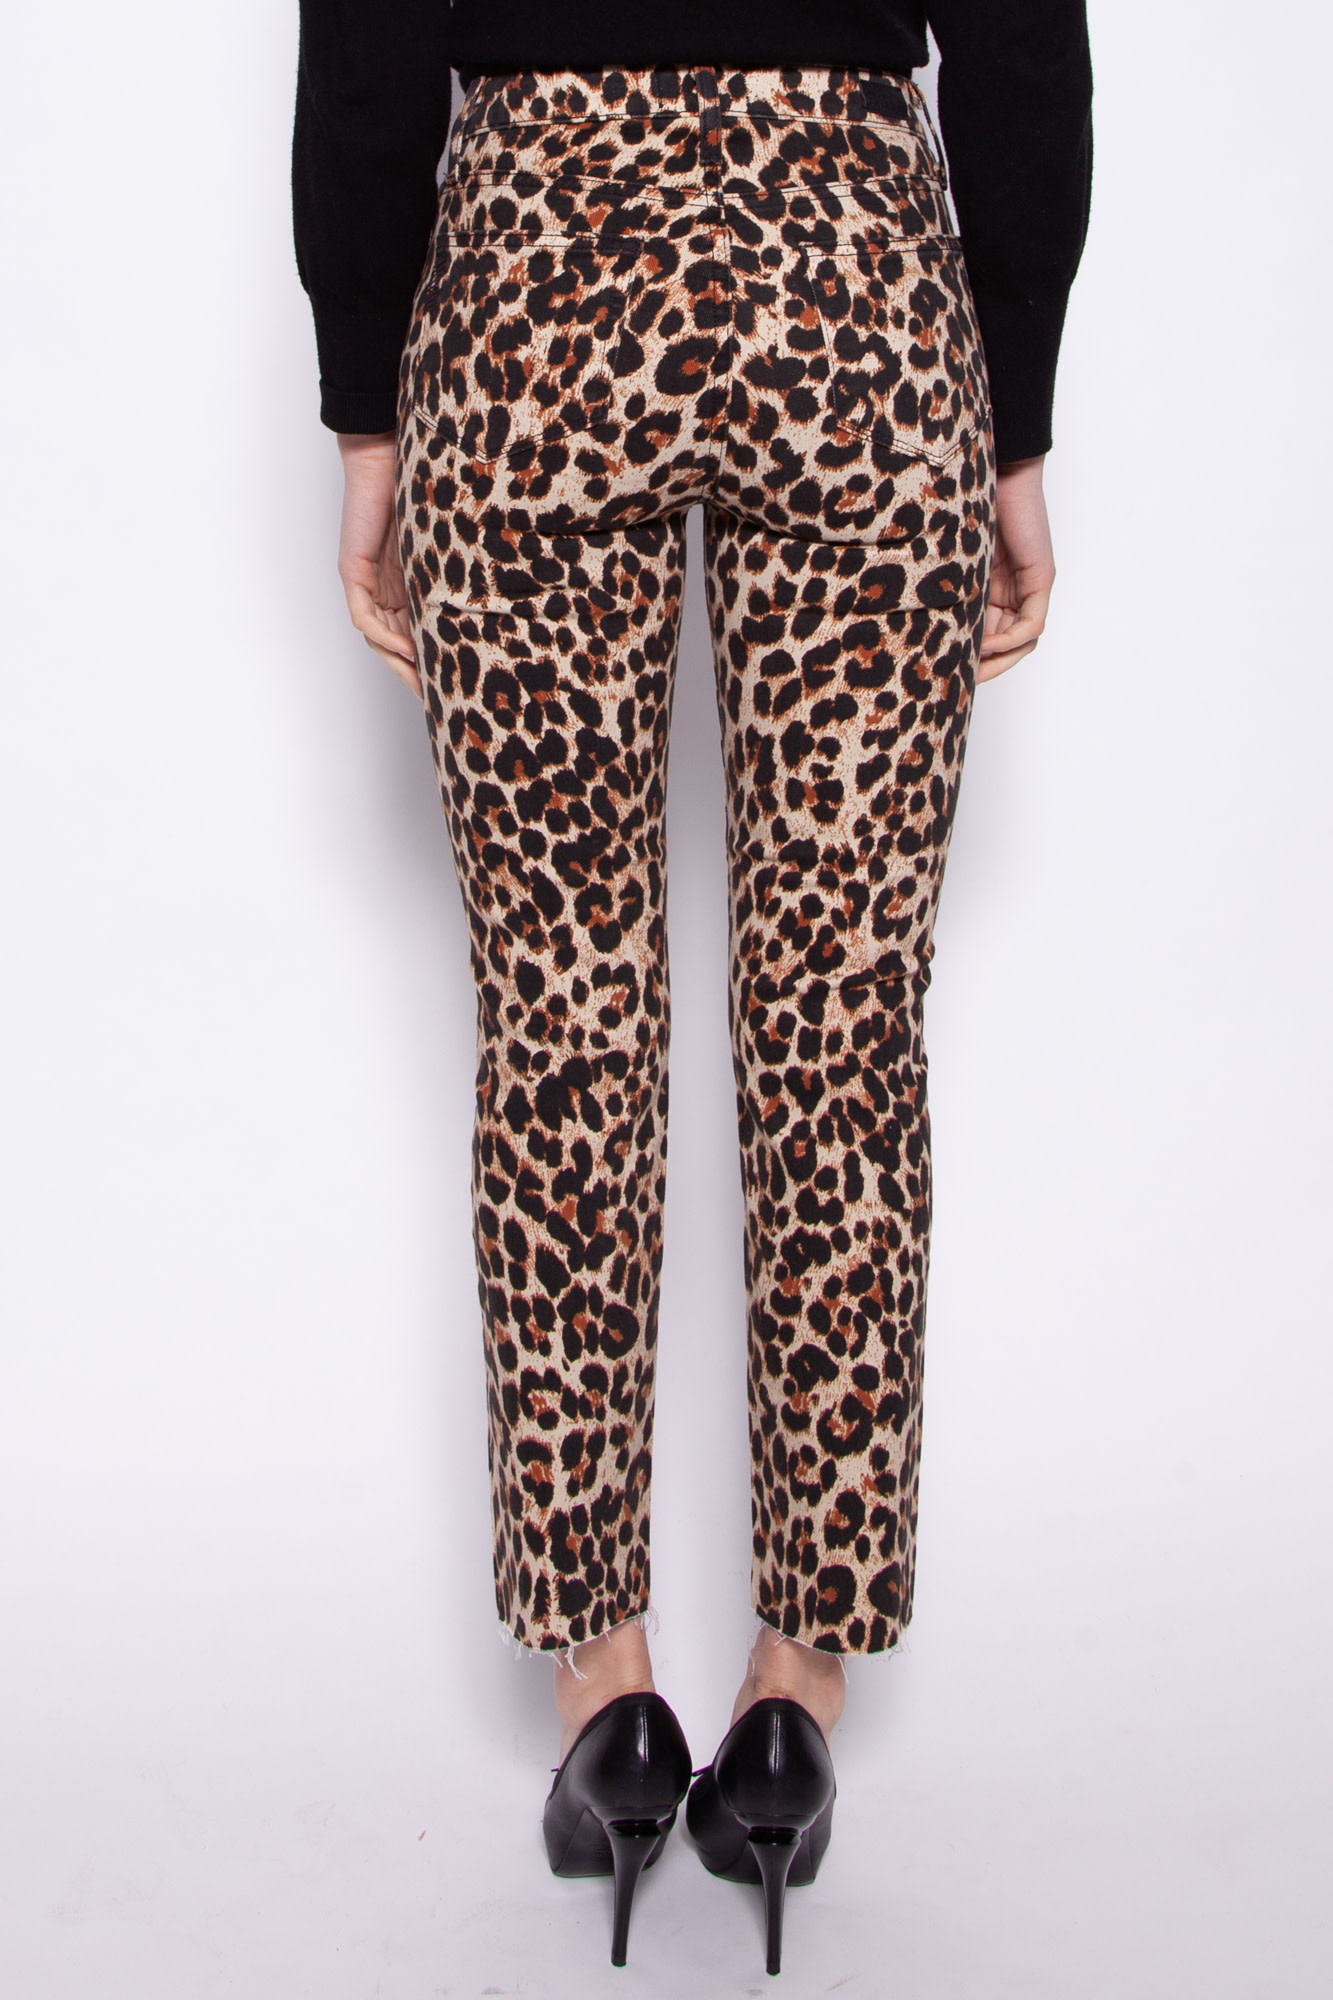 Paige CHEETAH PRINT PANTS - NEW WITH TAGS - (SIZE 25 - 28 -29)